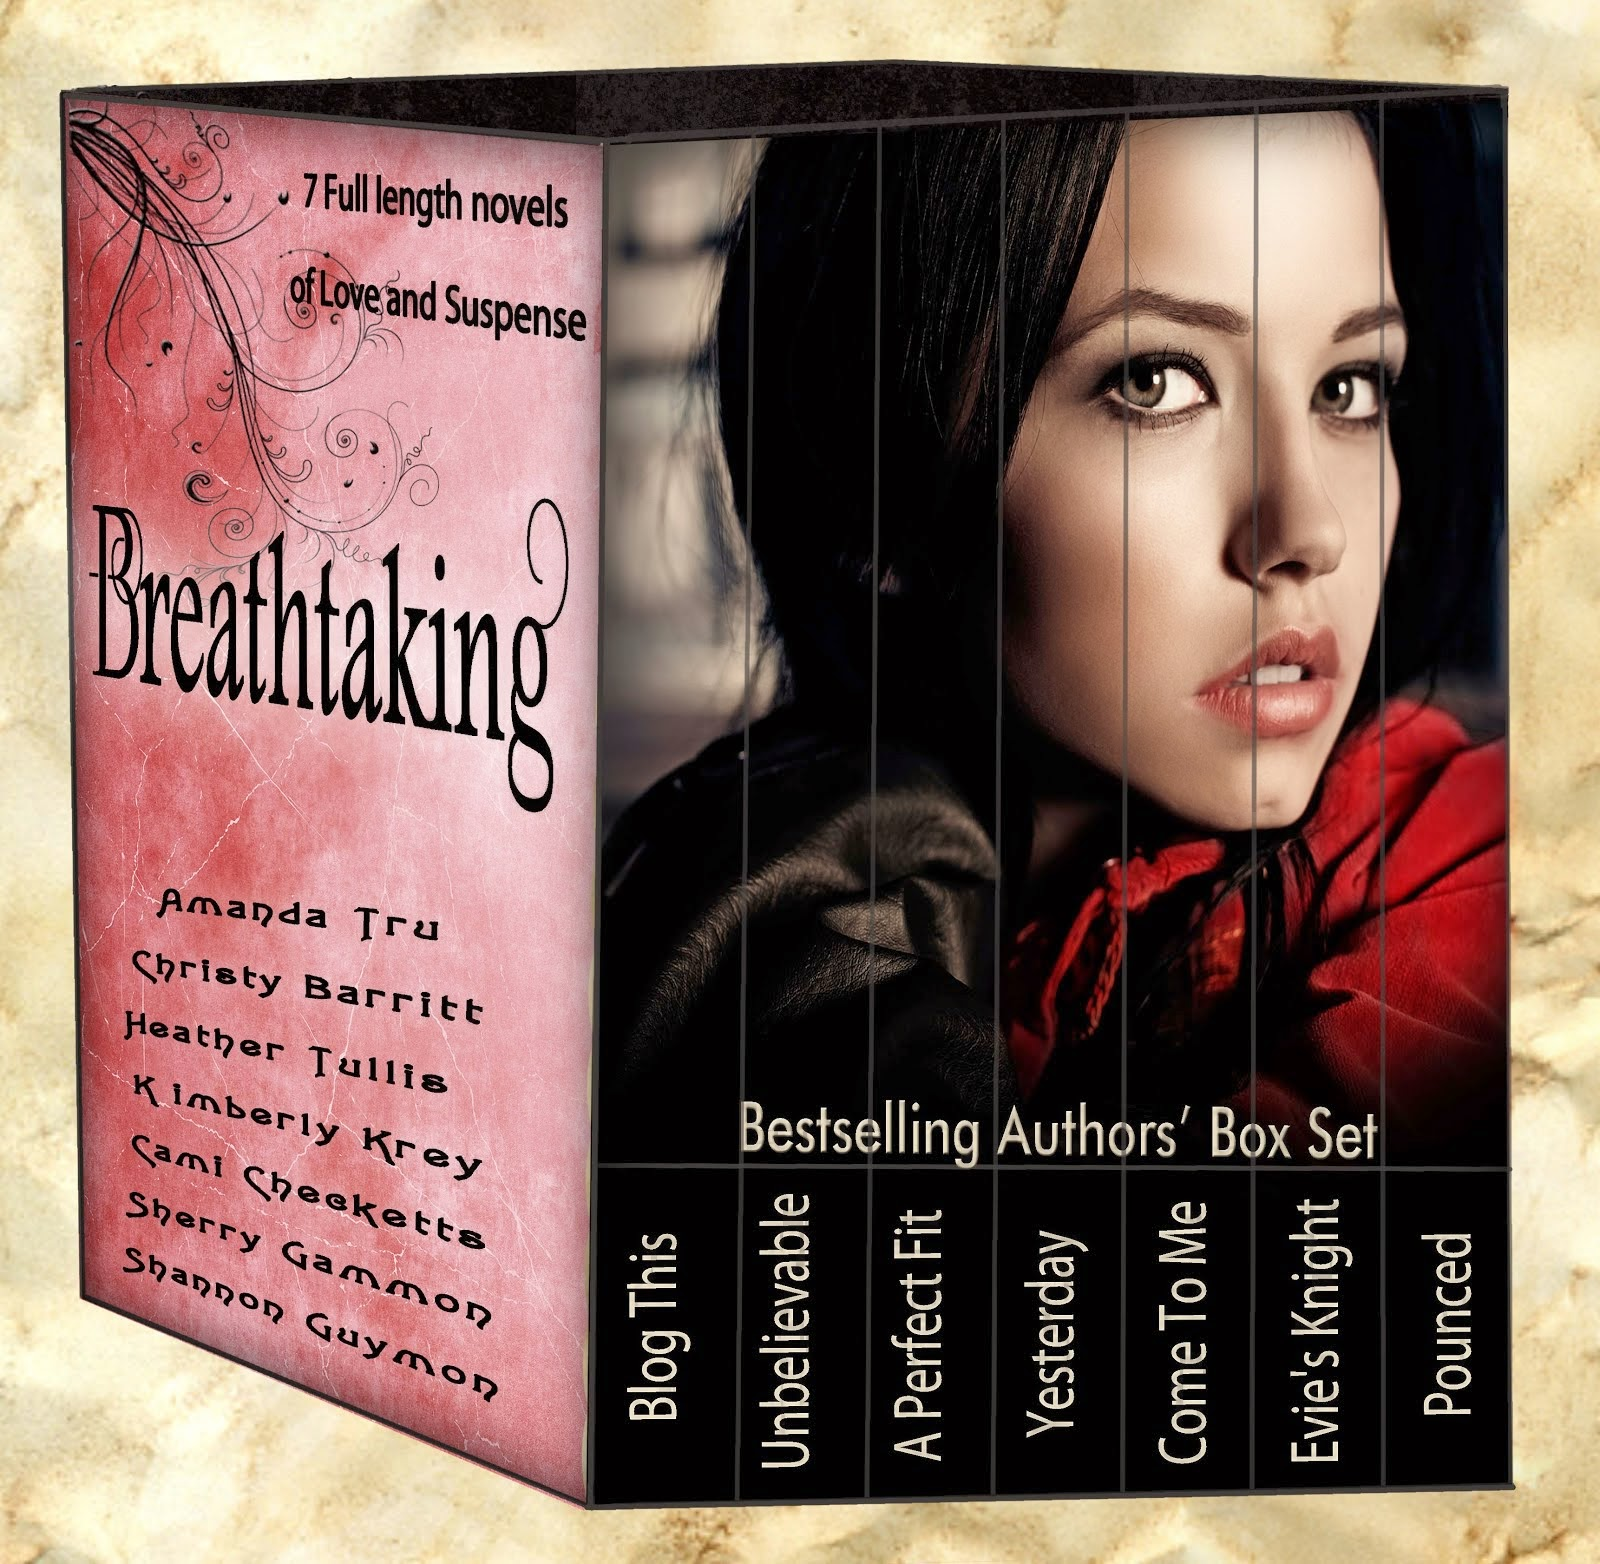 Get this 7-novel set for 99 cents now!